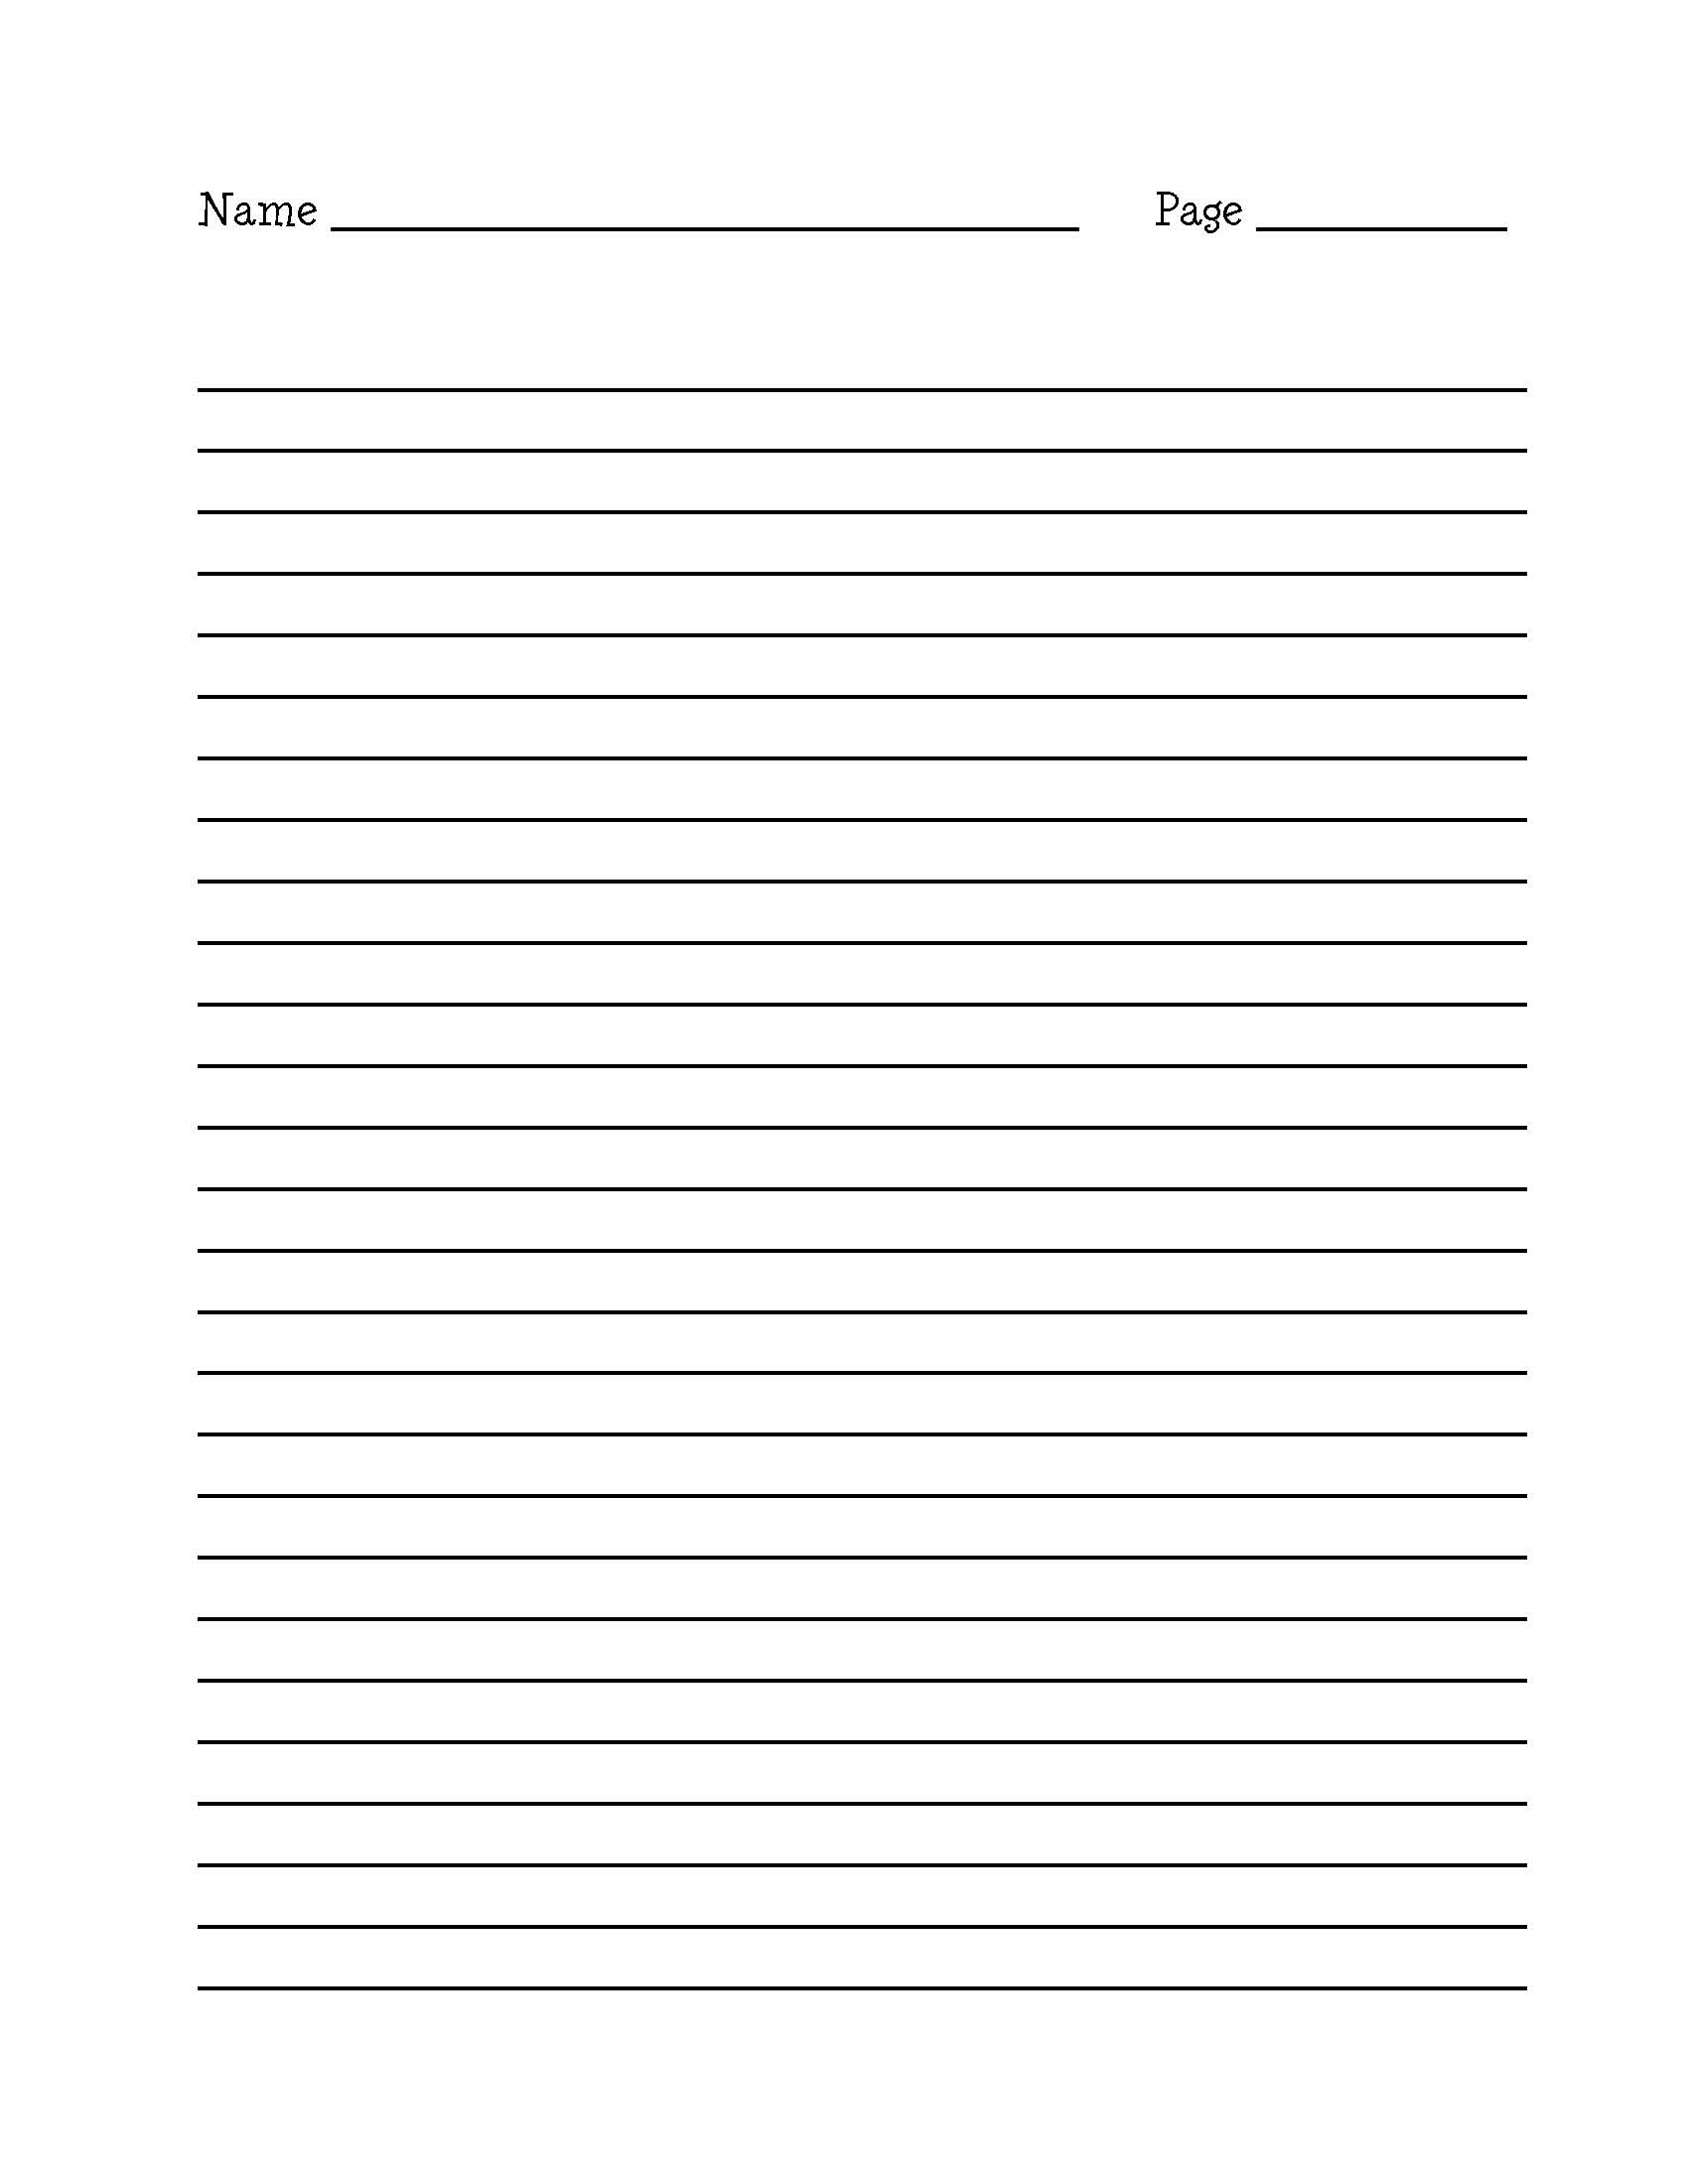 School Themed Lined Writing Paper: School Themed, Lined, Writing Paper Can  Make You Love Telling You All Their Ideas And Dreams For This Very Special  Year!  Lined Paper Background For Word